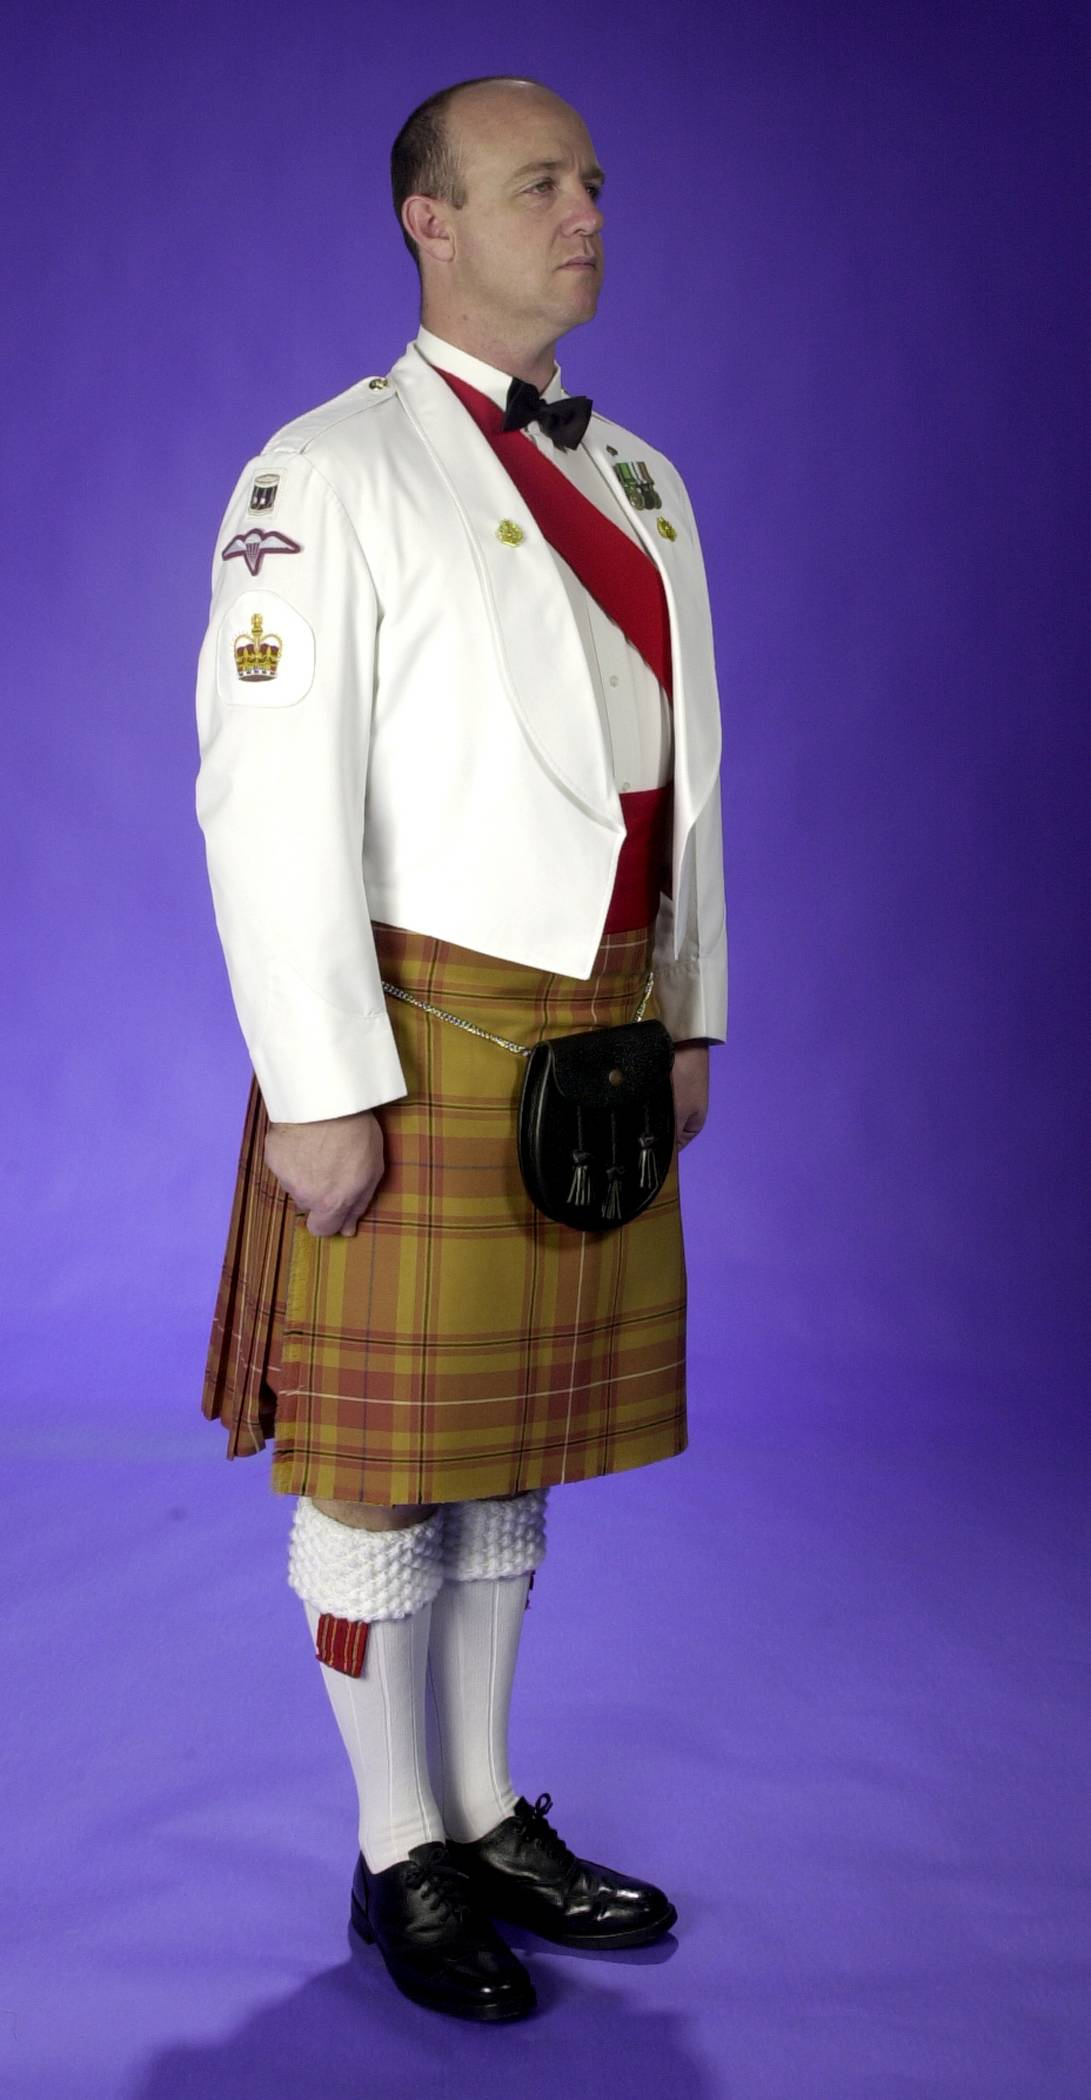 Scottish Mess Dress White Jacket (Společenskáuniforma) :: Australia (AUS) ...